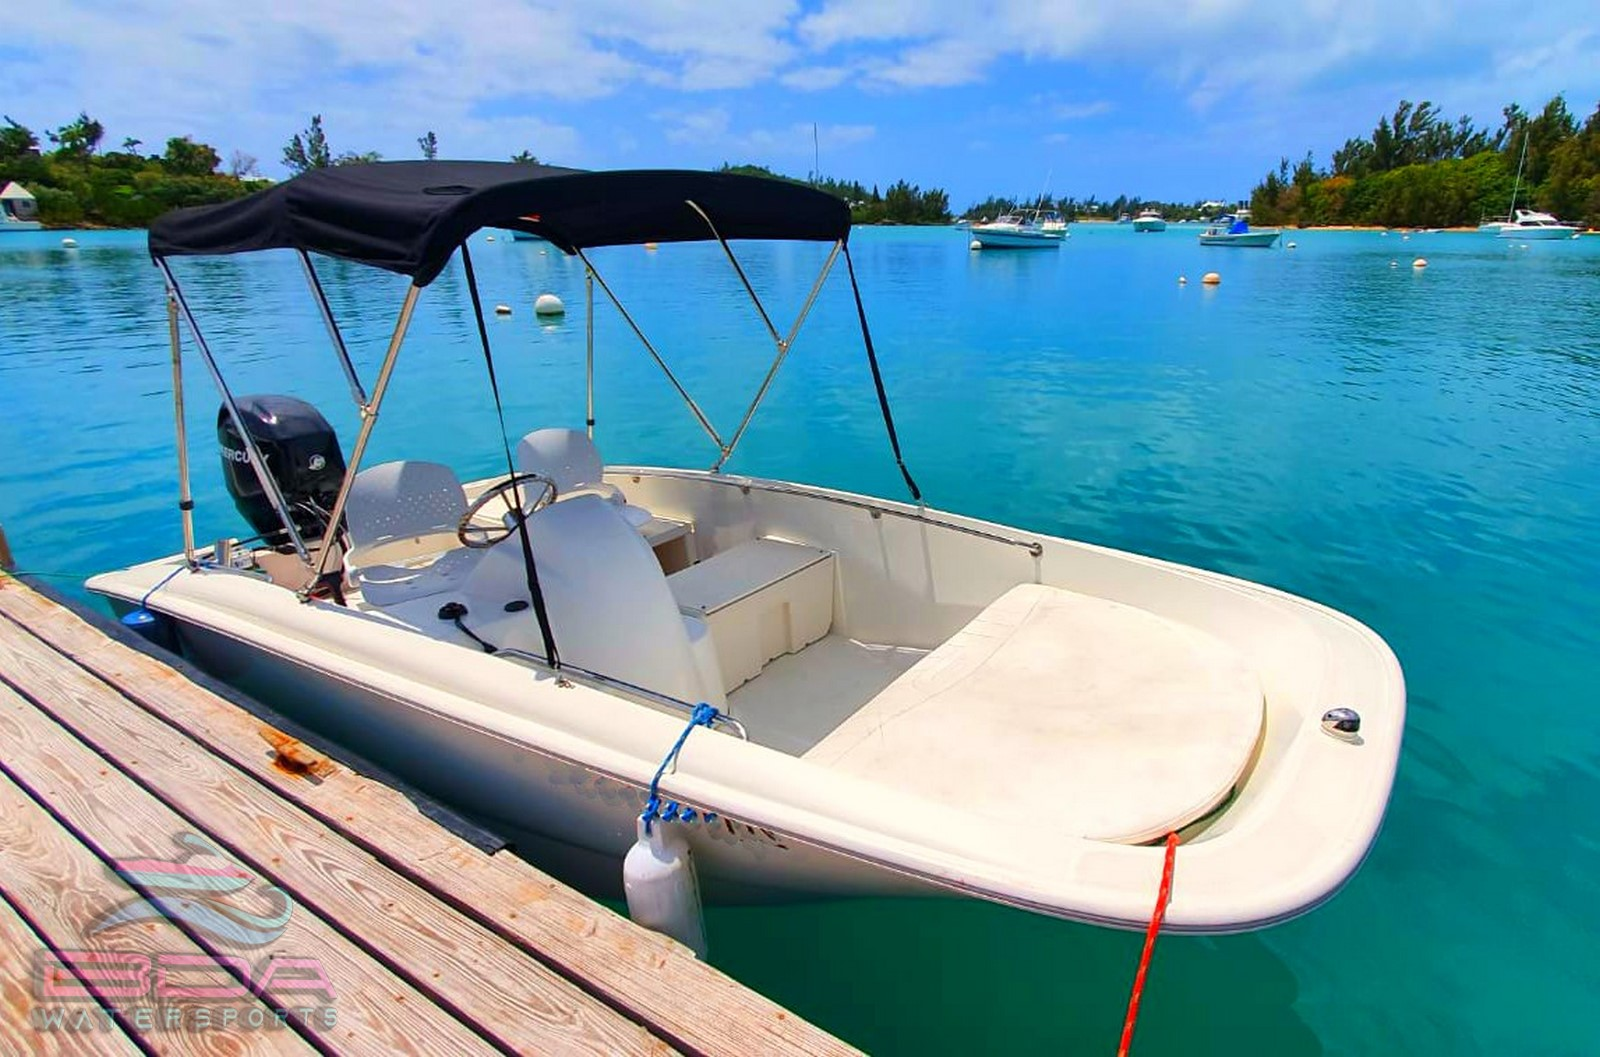 Gallery of Boat Rentals in Bermuda <p>Boston Whaler Boats in Action</p>